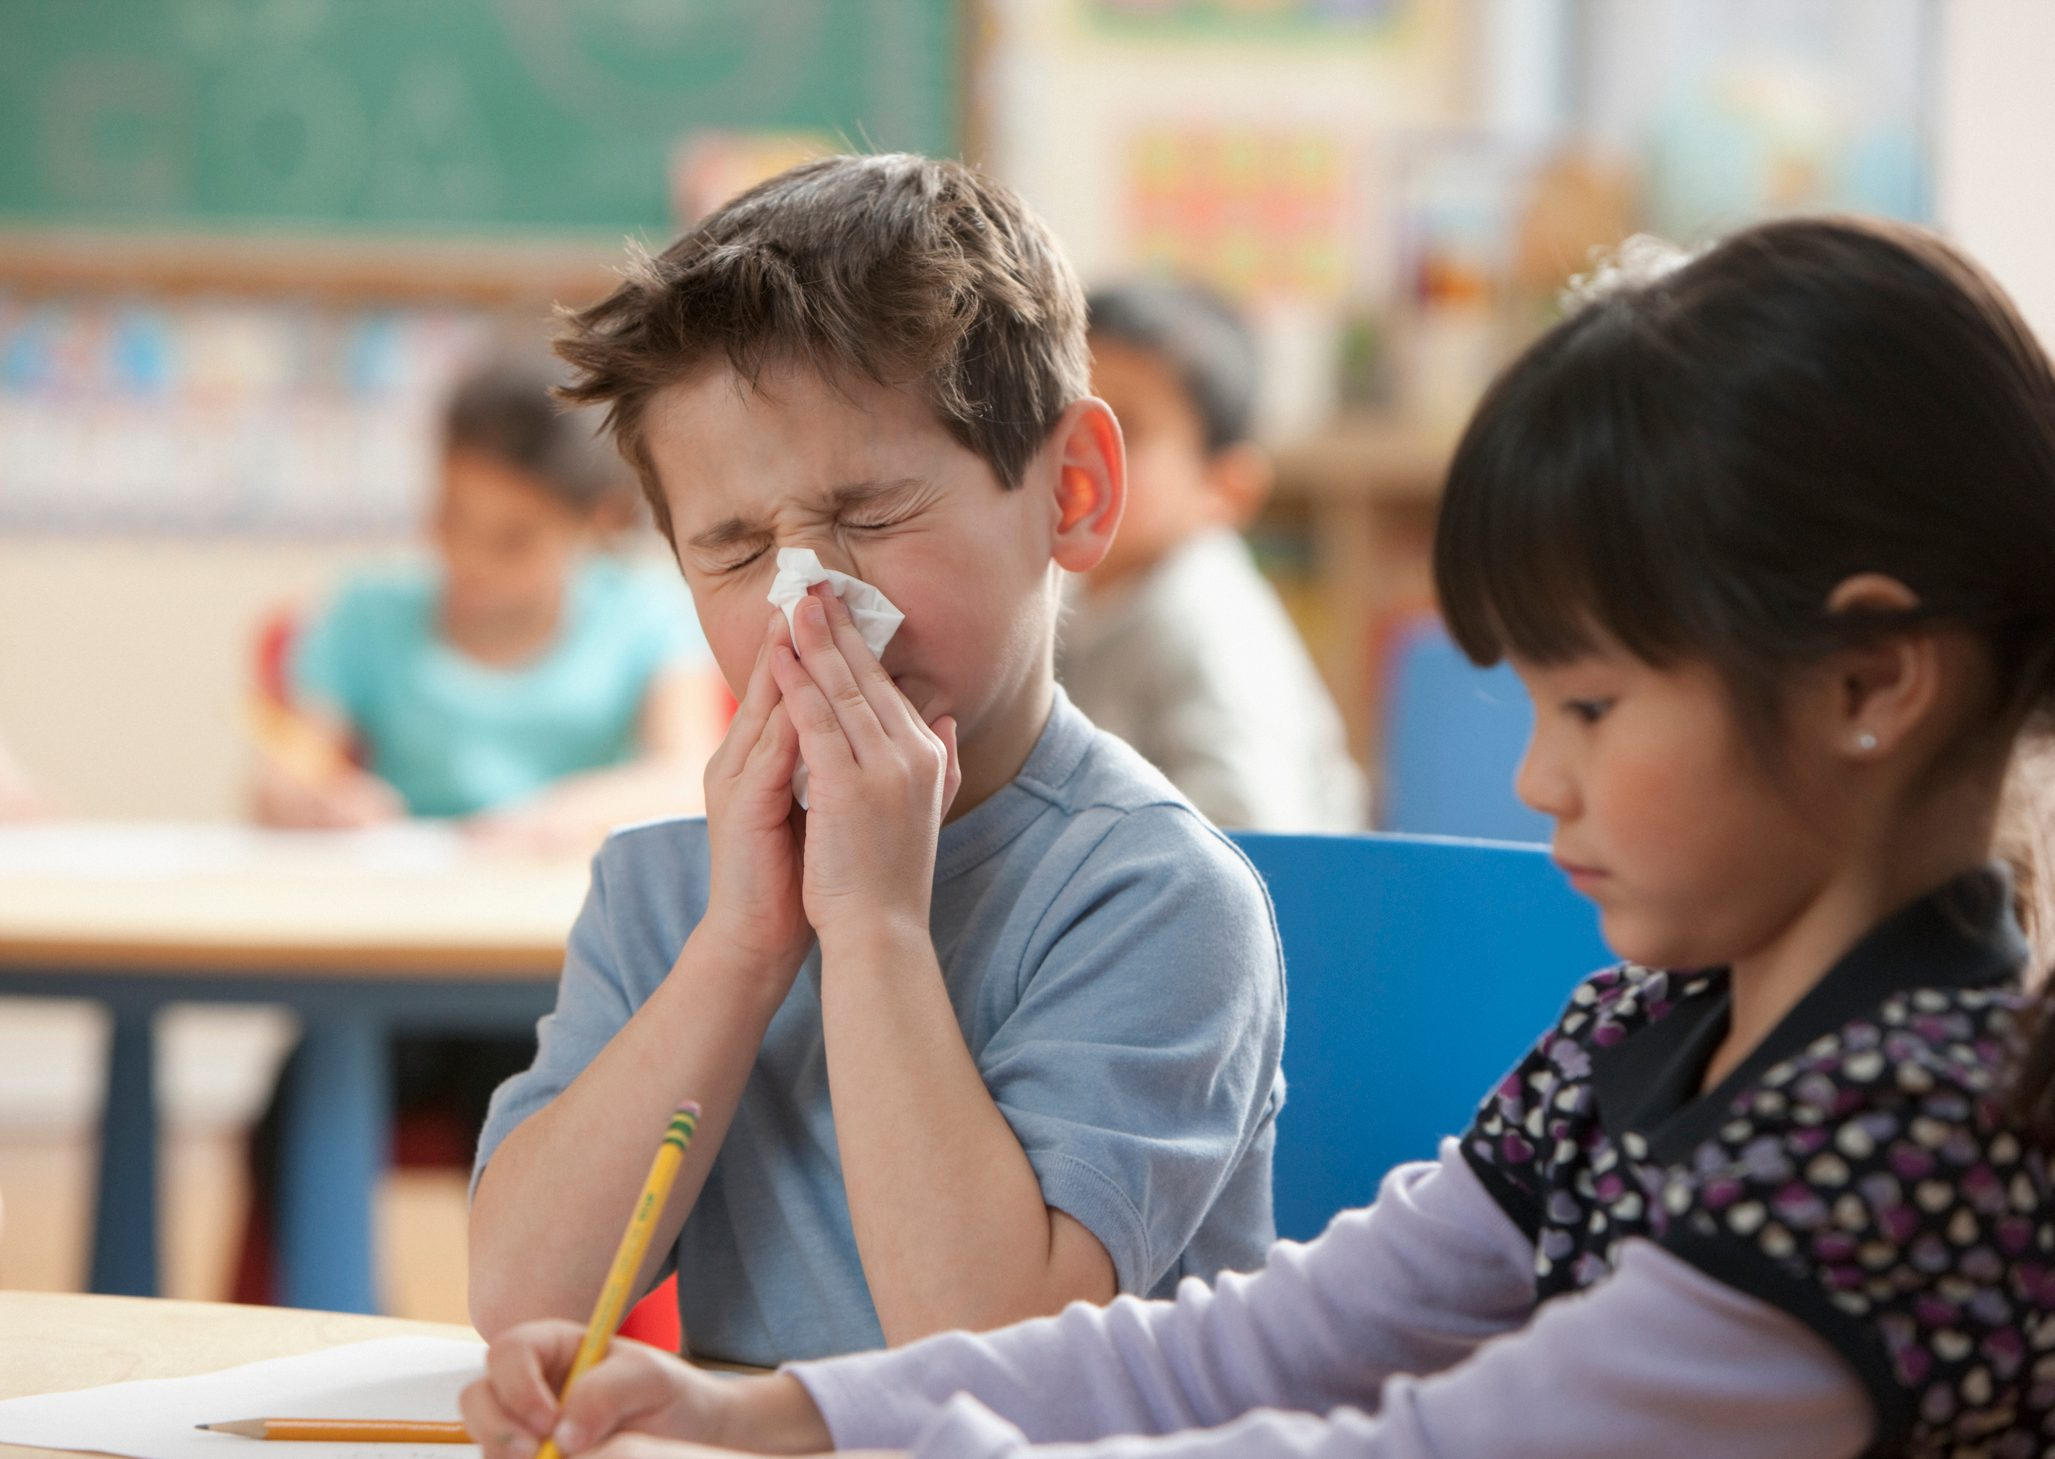 young boy blowing his nose at school